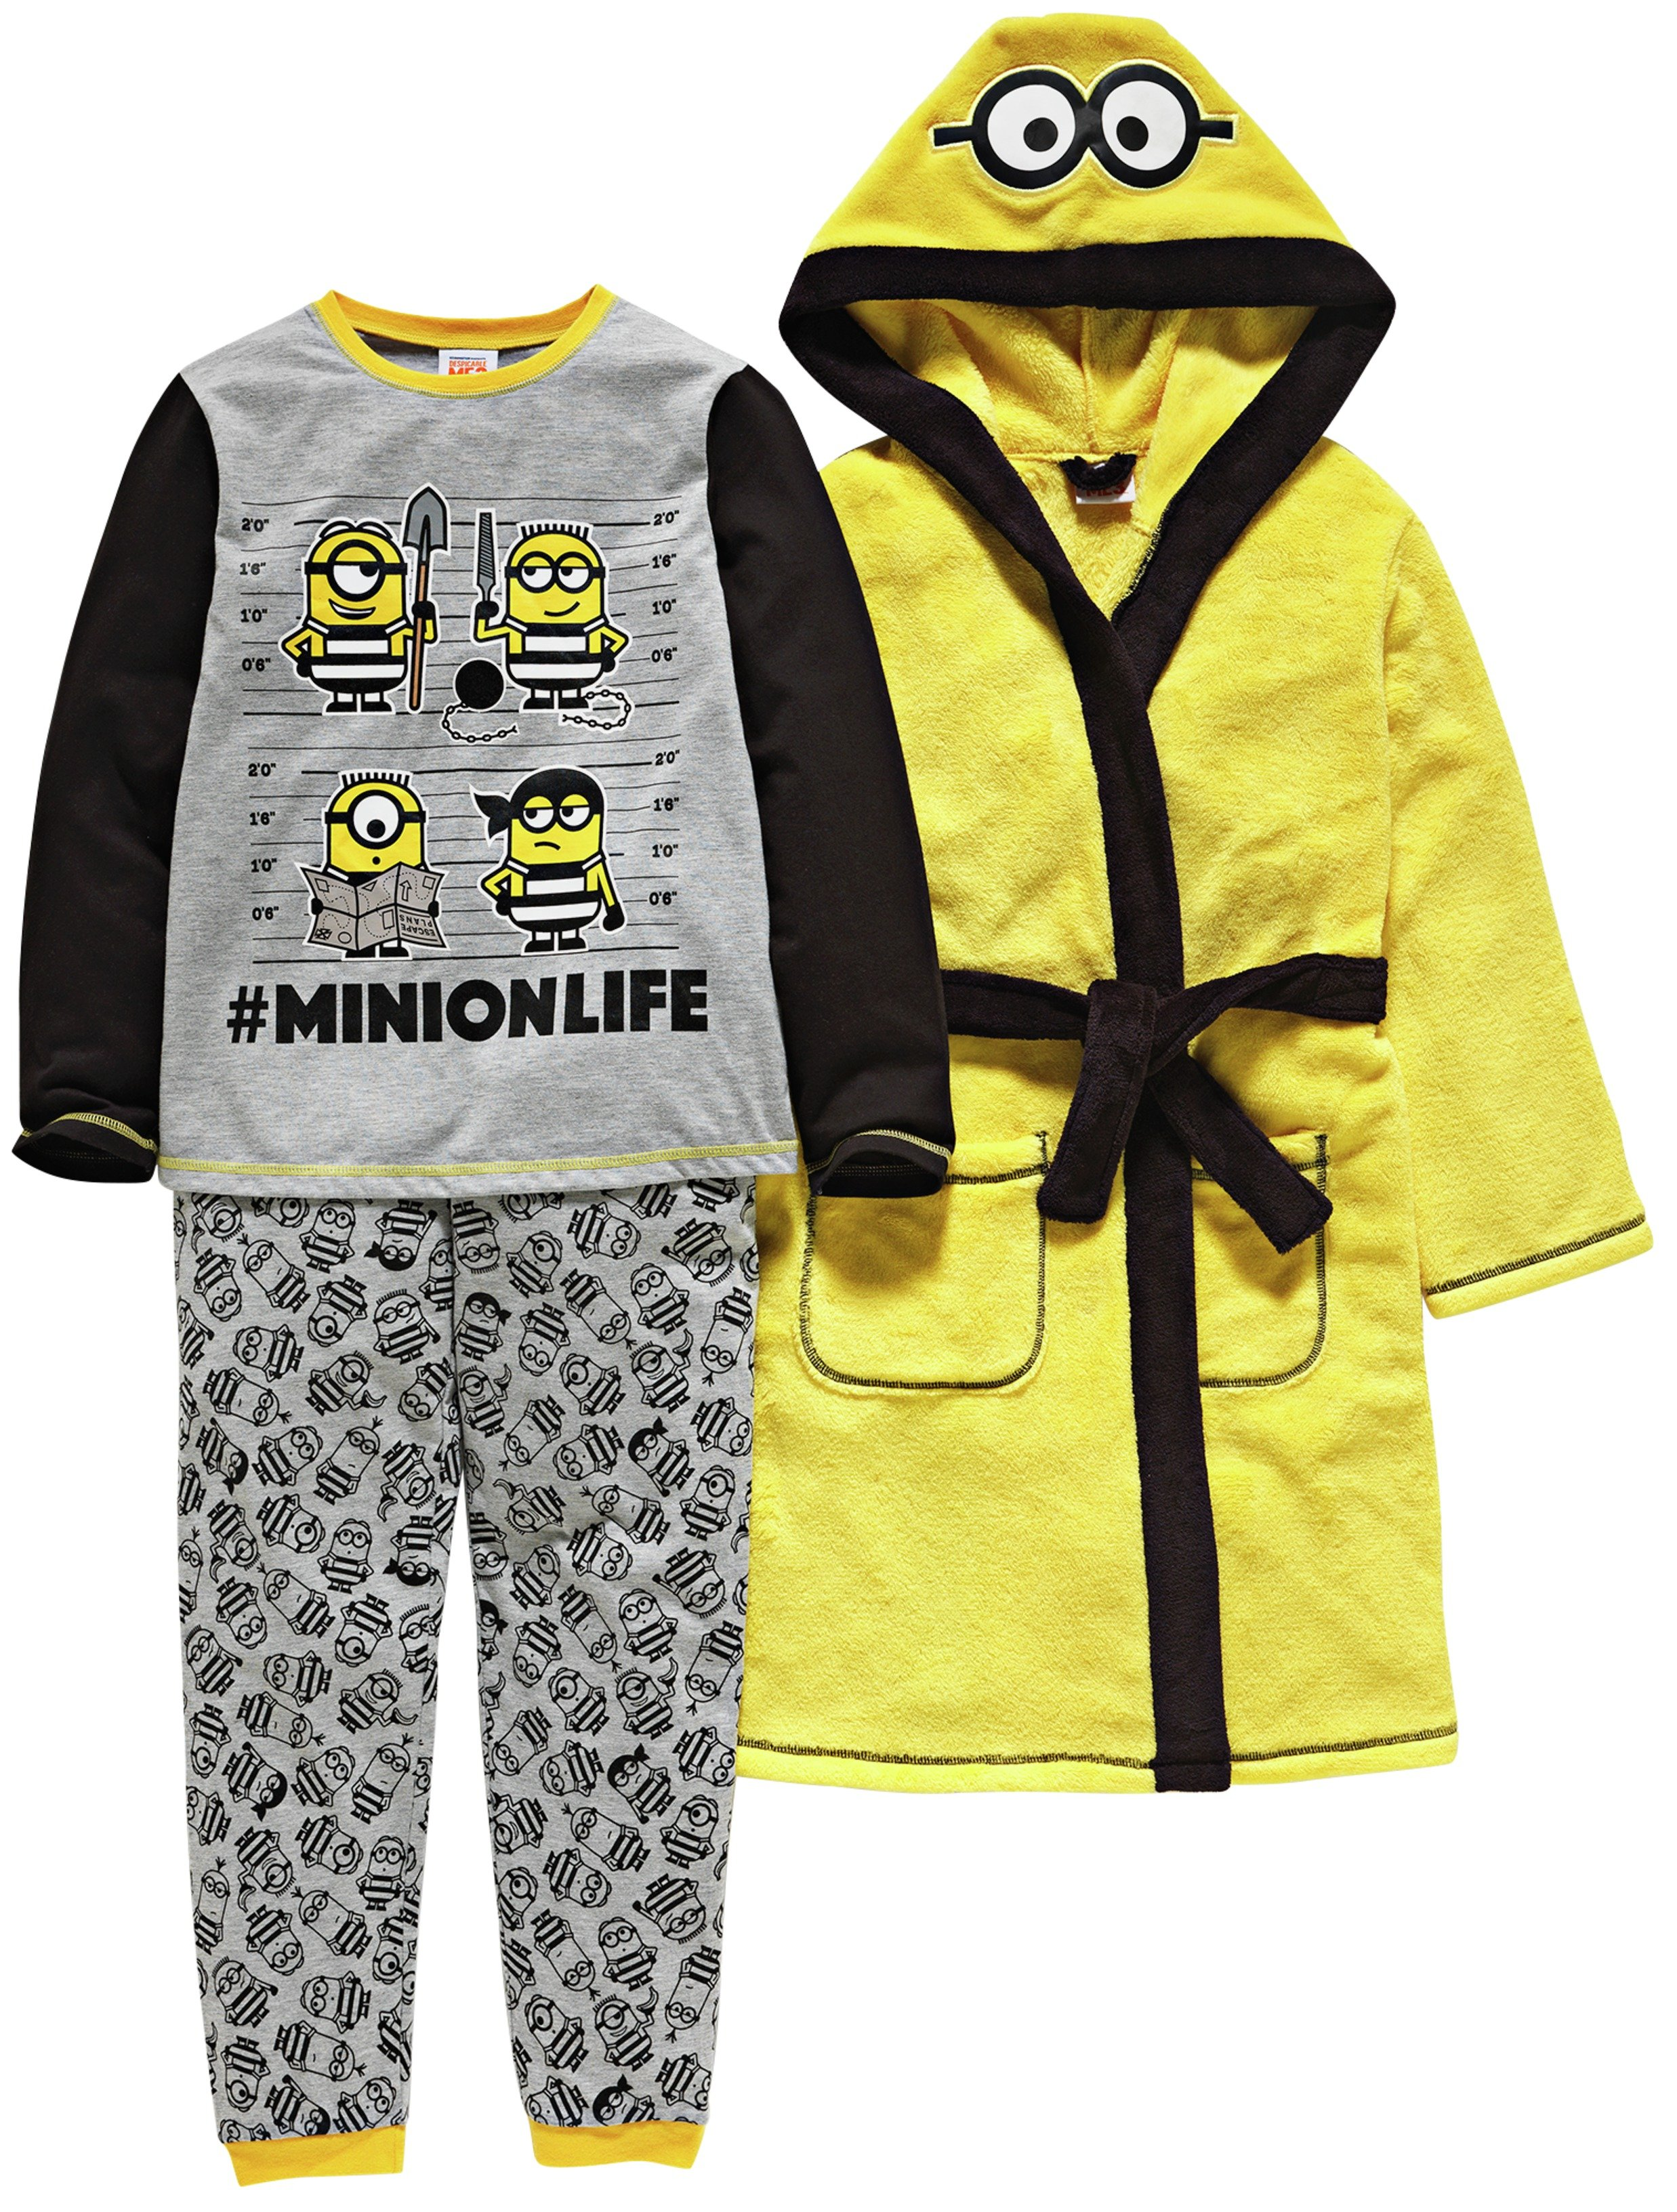 Minions Yellow Nightwear Set - 5-6 Years